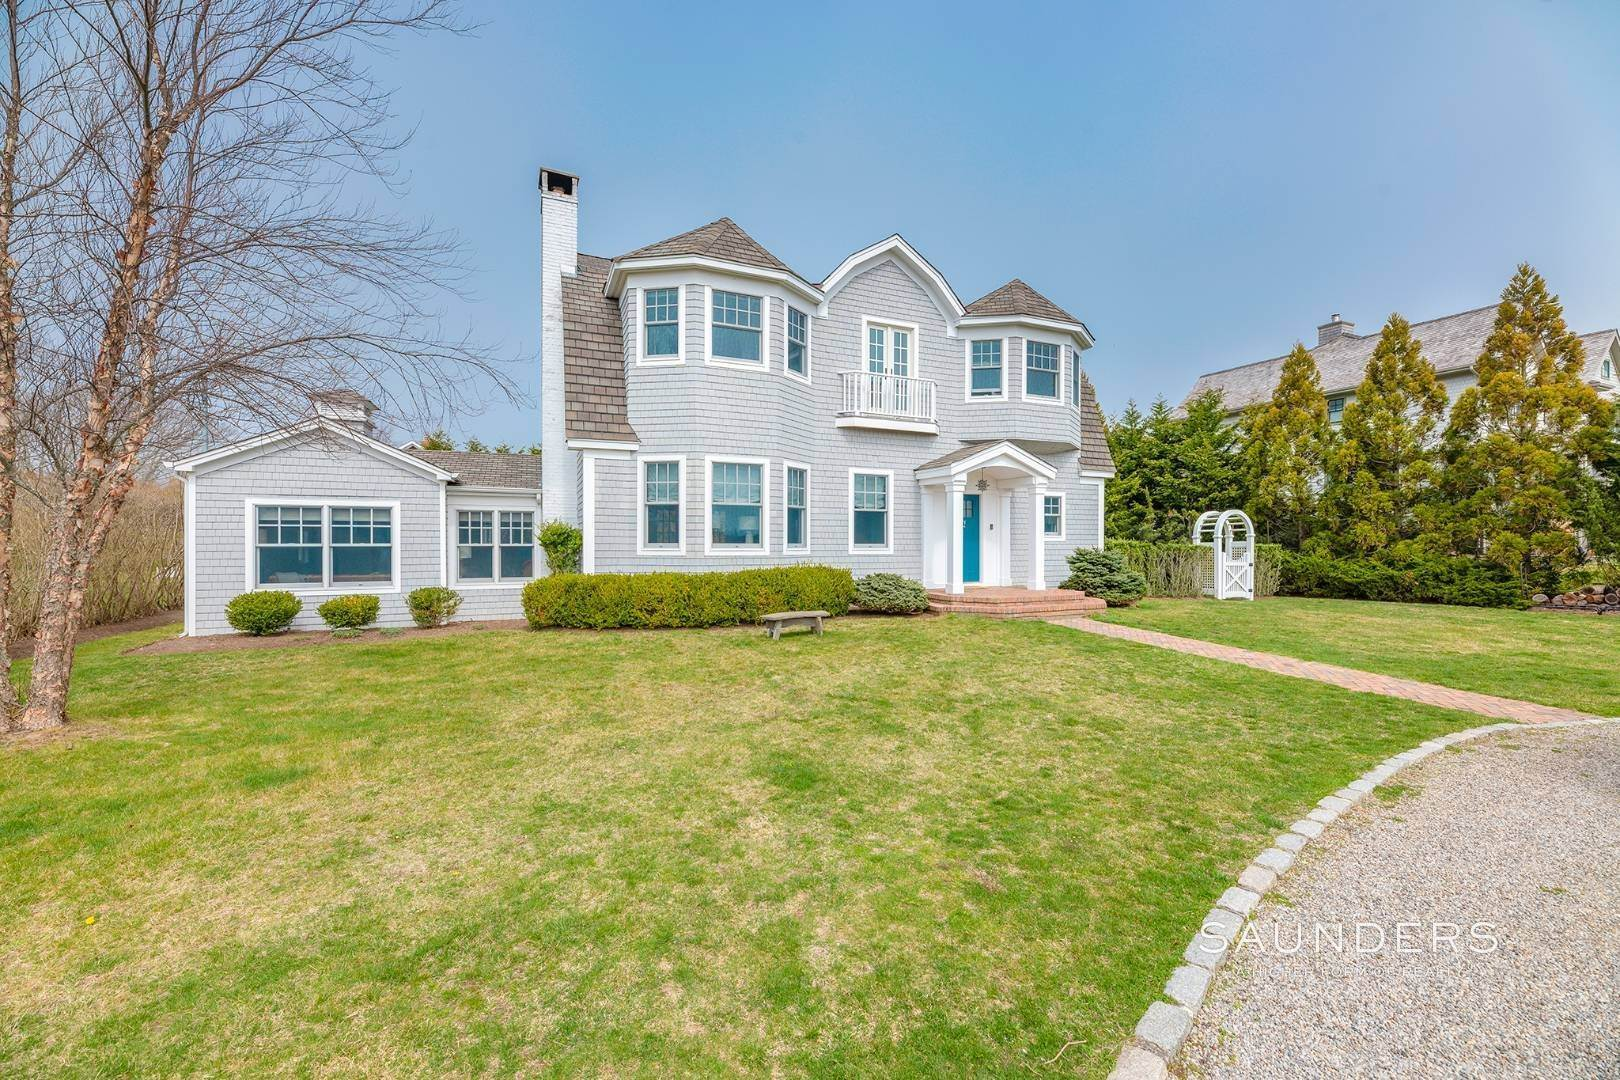 Single Family Homes at Location! Exclusive Exchange Place 4 Bedroom 30 Exchange Place, Westhampton Beach Village, Southampton Town, NY 11978